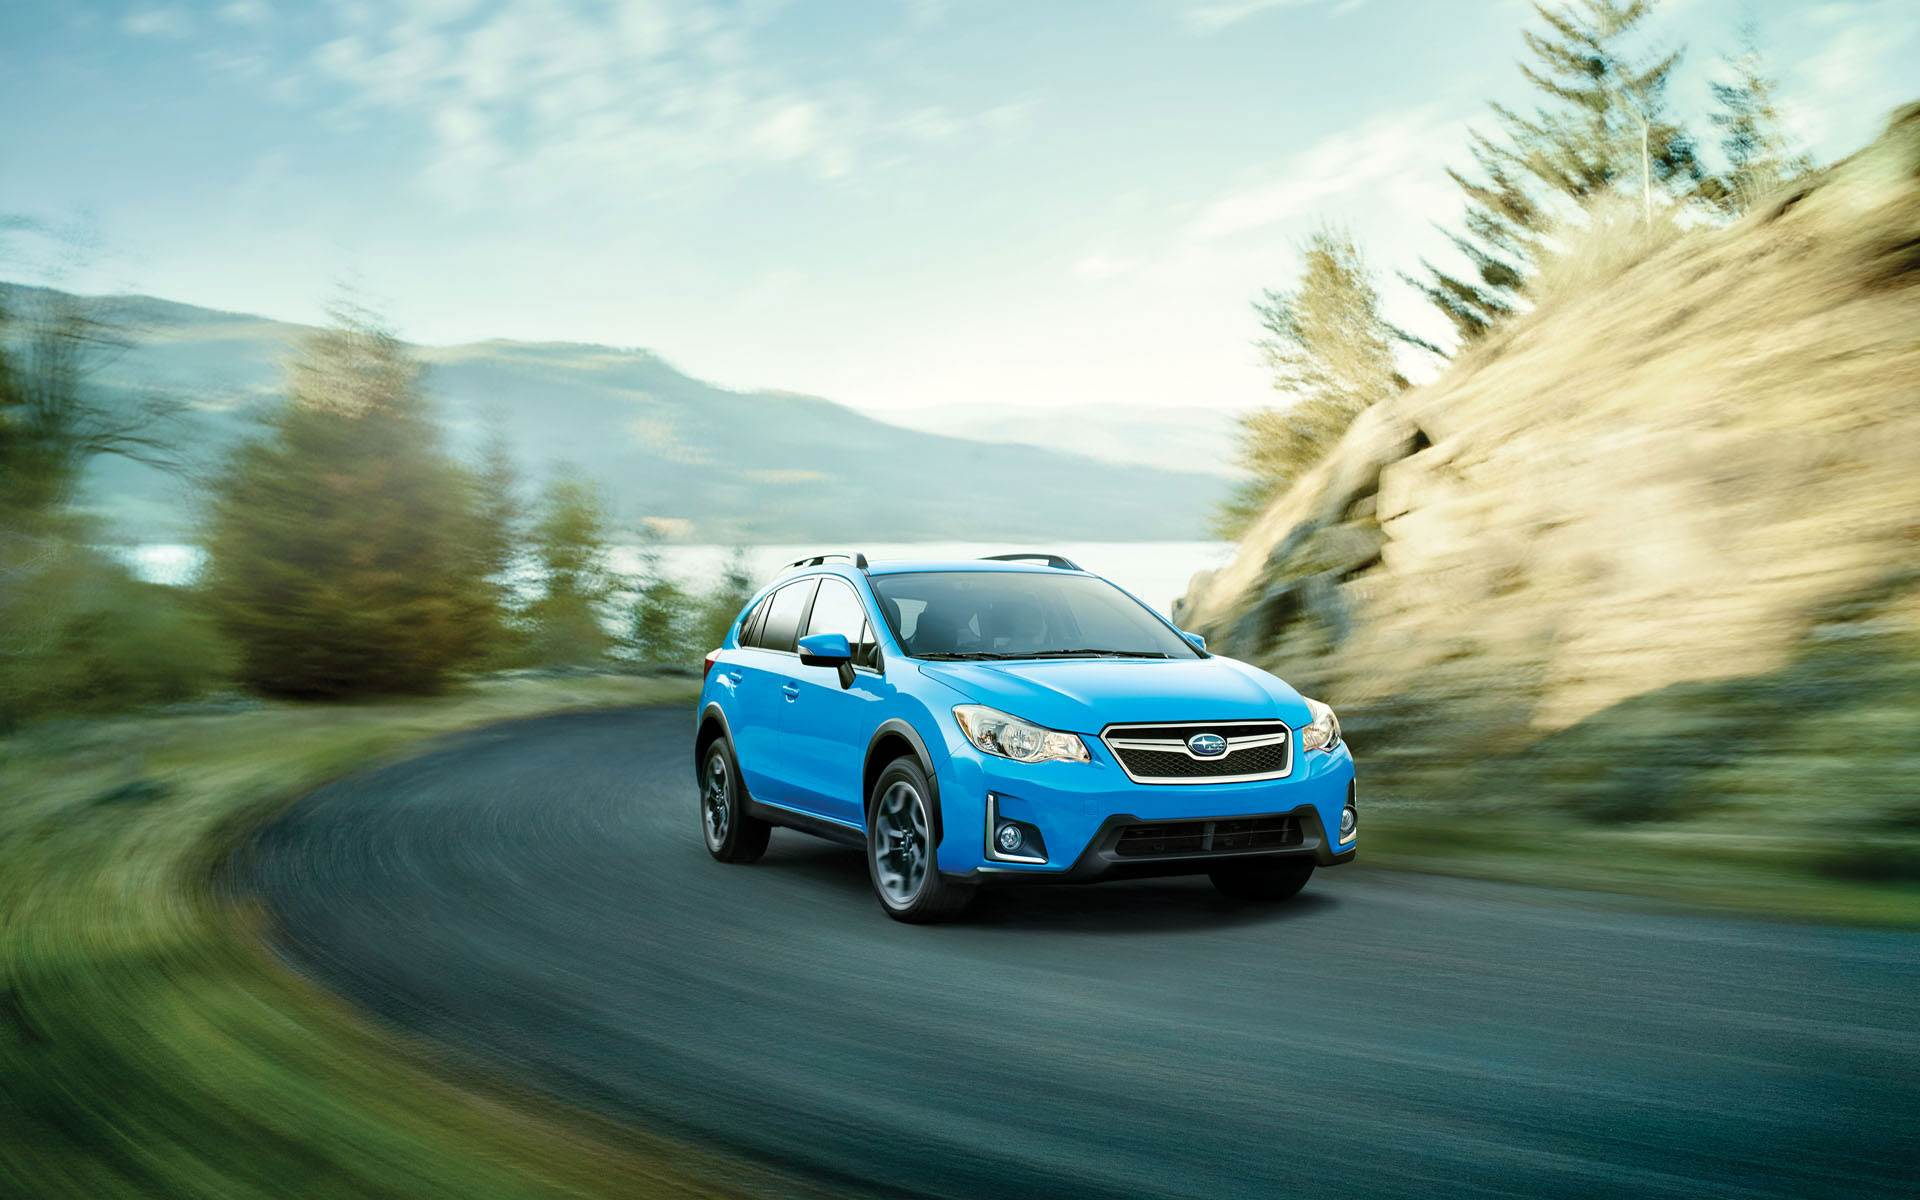 2017 Subaru Crosstrek available near Orlando